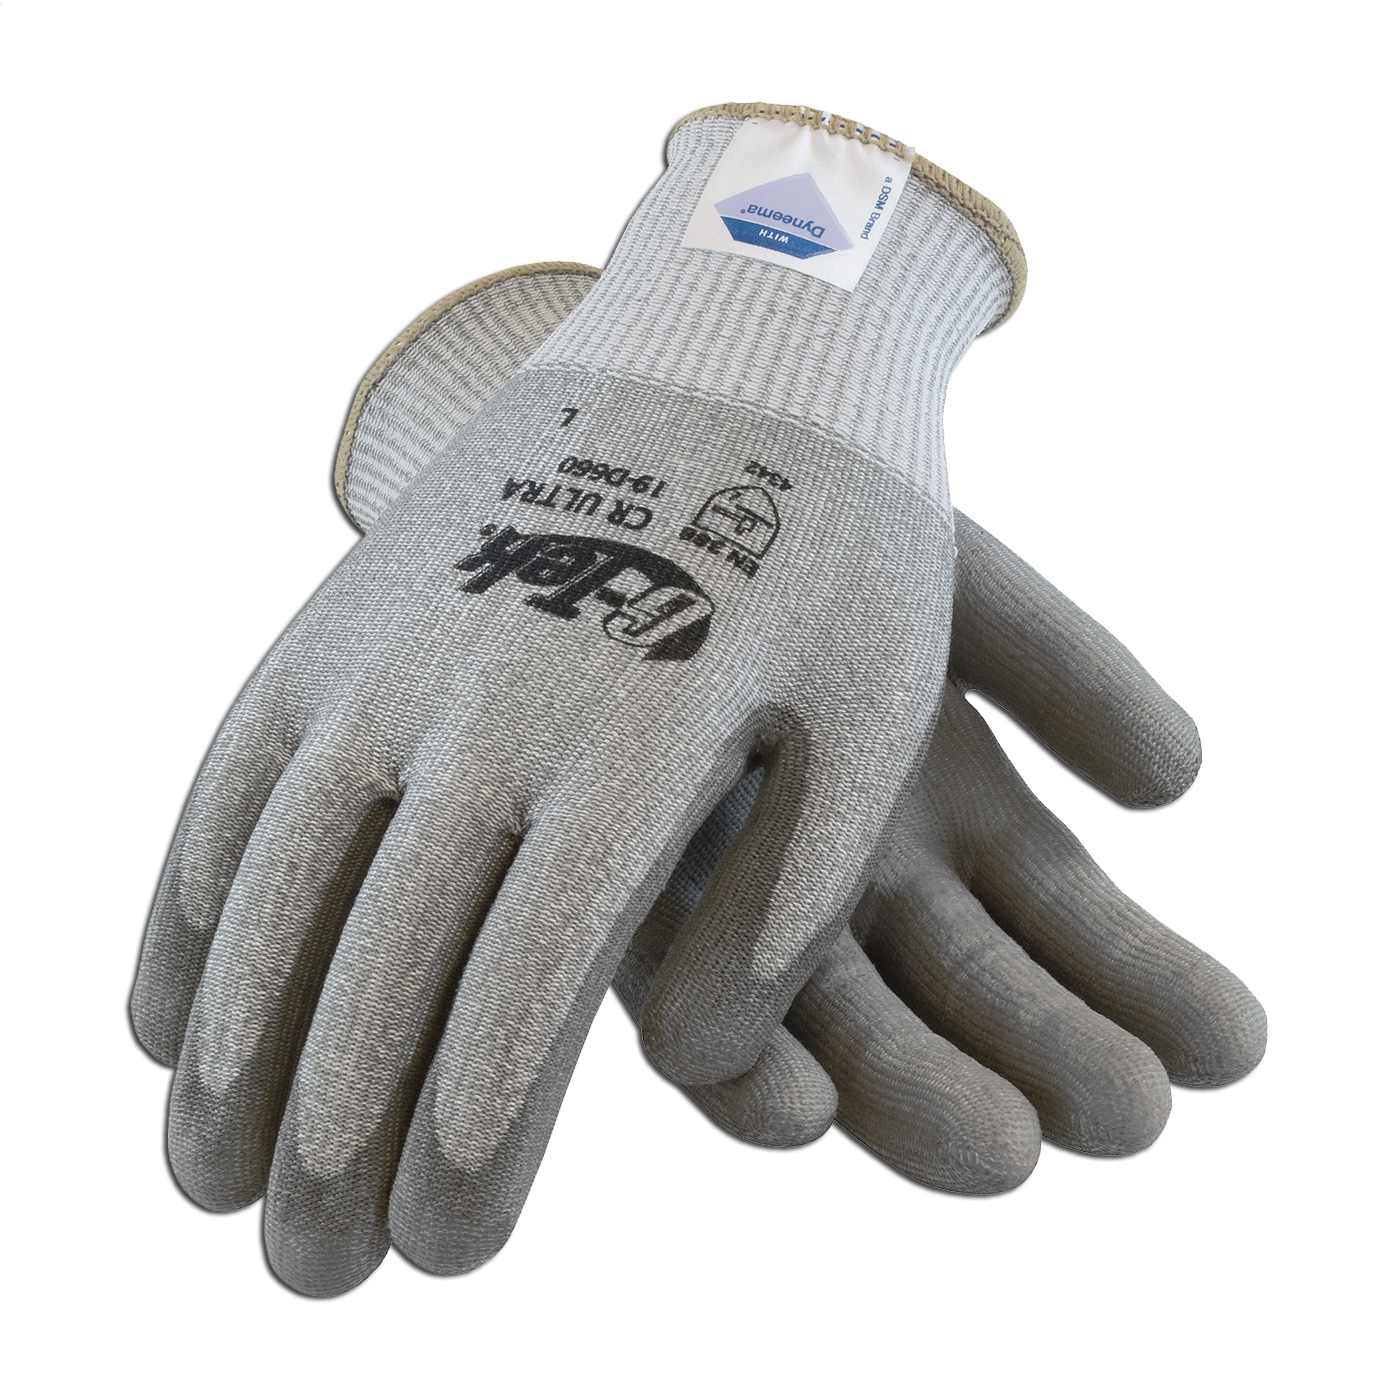 Gloves Hand Protection Frham Safety Products Inc